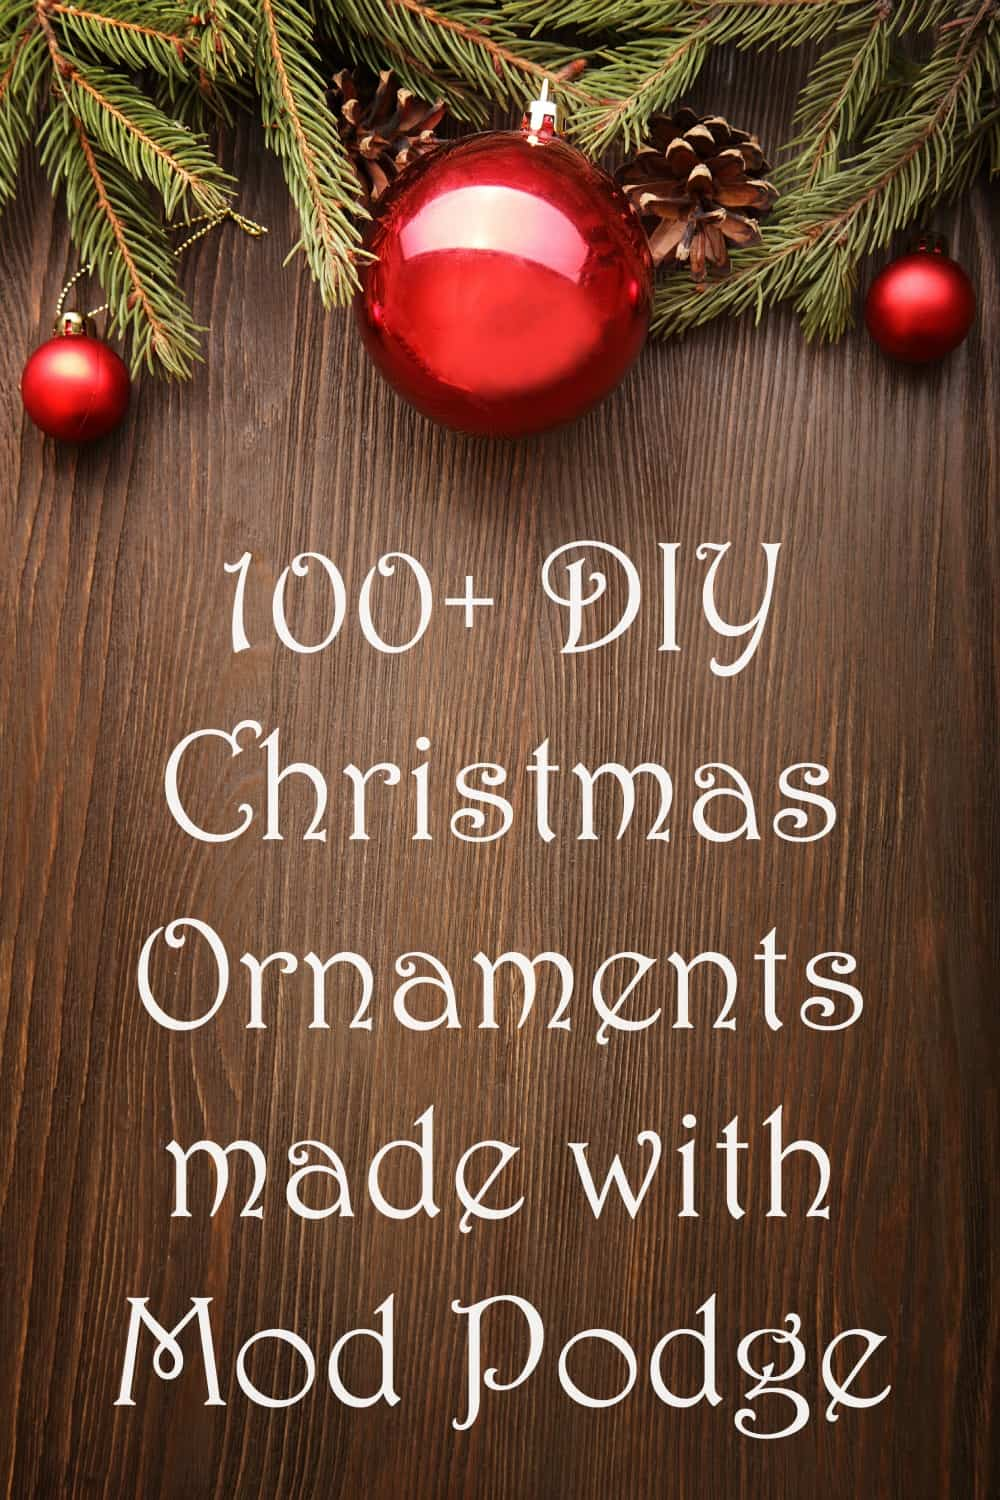 If you're looking for some easy ideas for DIY Christmas ornaments, here are over 100 homemade projects, all made with Mod Podge! Lots of variety including options for kids to make. Use paper, fabric and more. Vintage, rustic, farmhouse and modern styles!